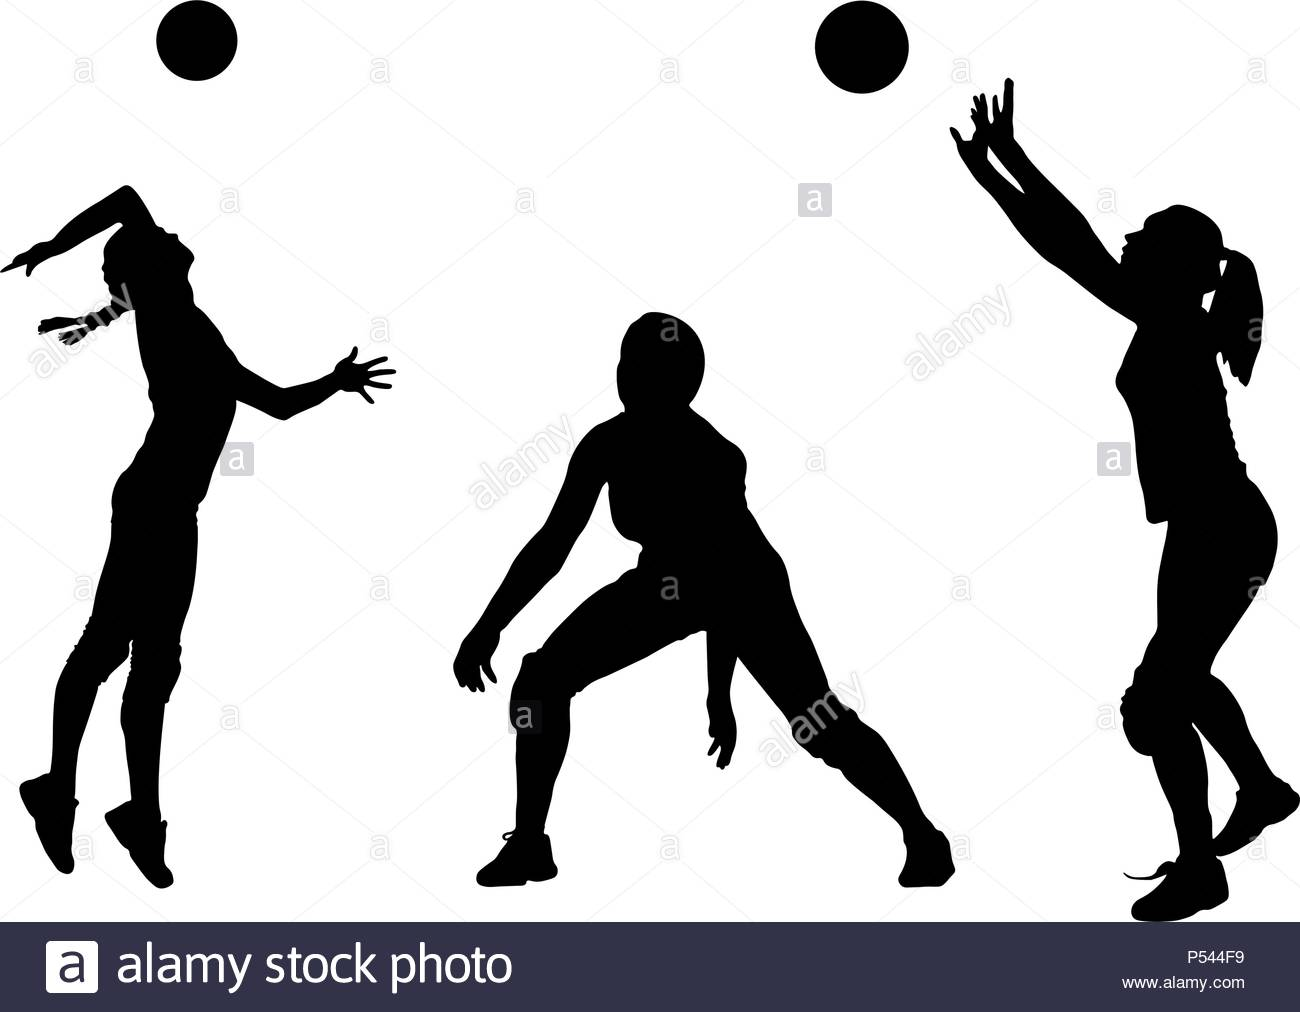 Abstract Triangle Volleyball Player Silhouette Stock: Volleyball Spike Stock Vector Images